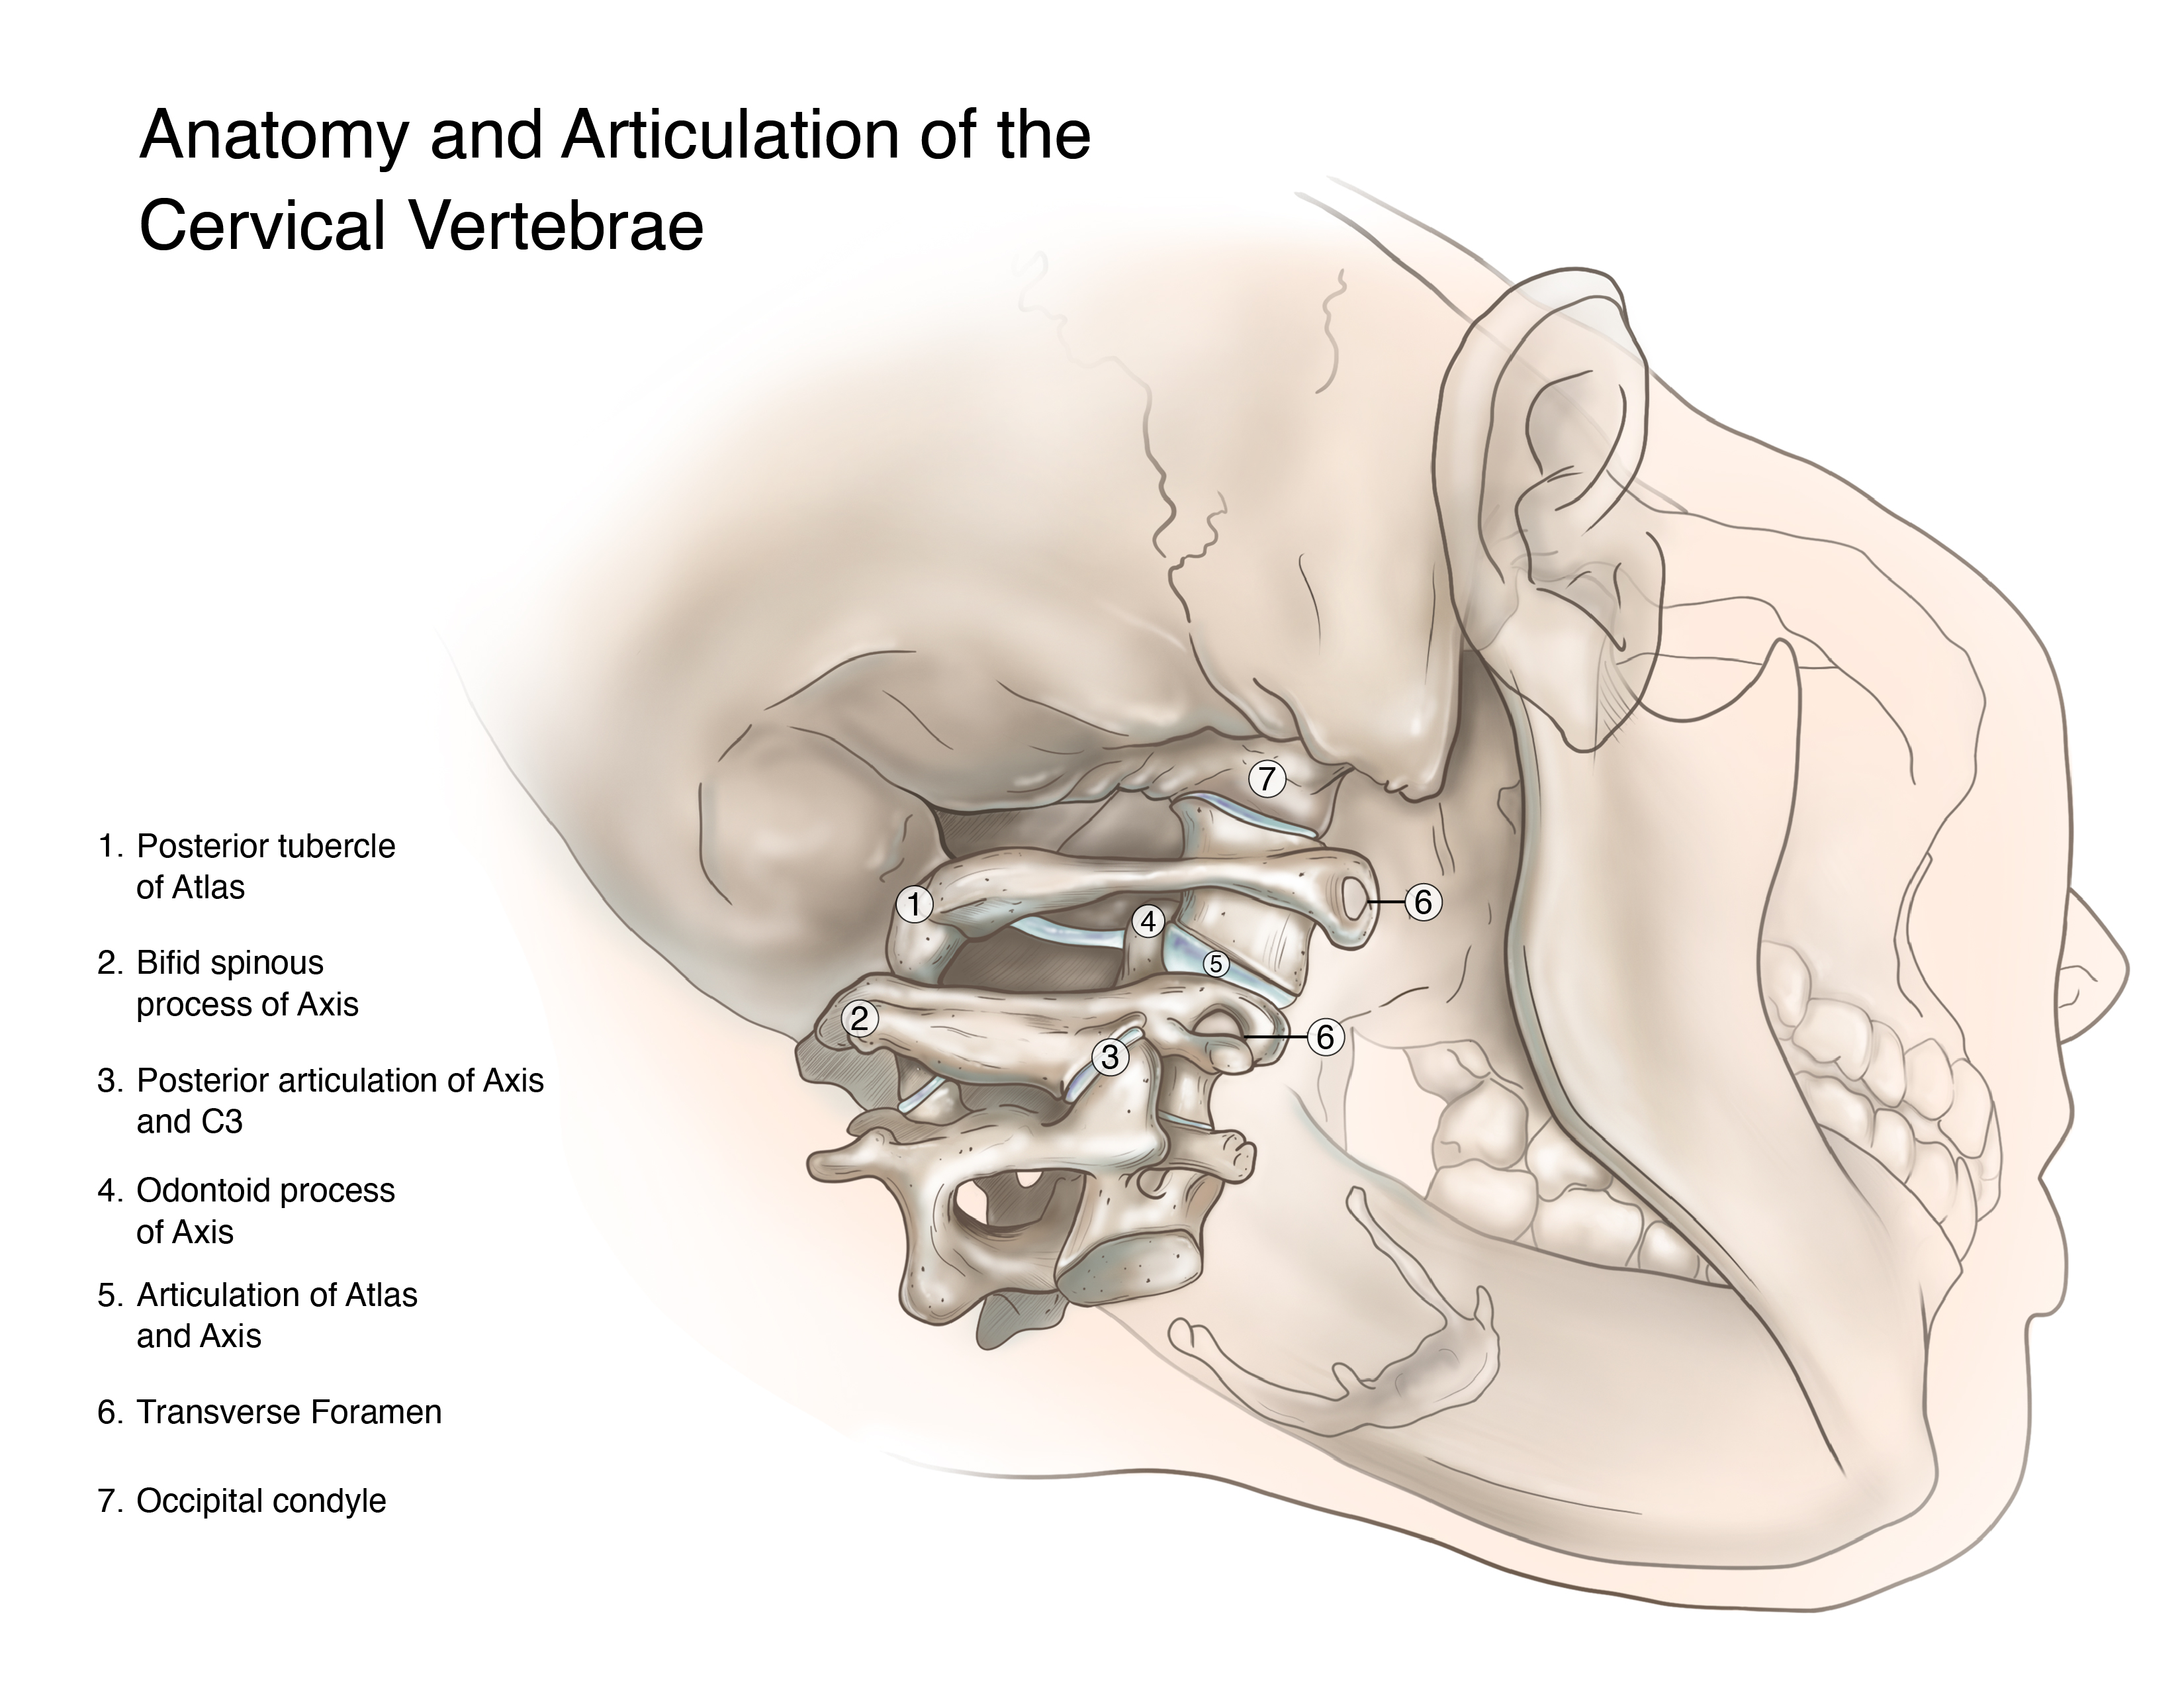 An illustration laying out the different parts of the cervical vertebrae.